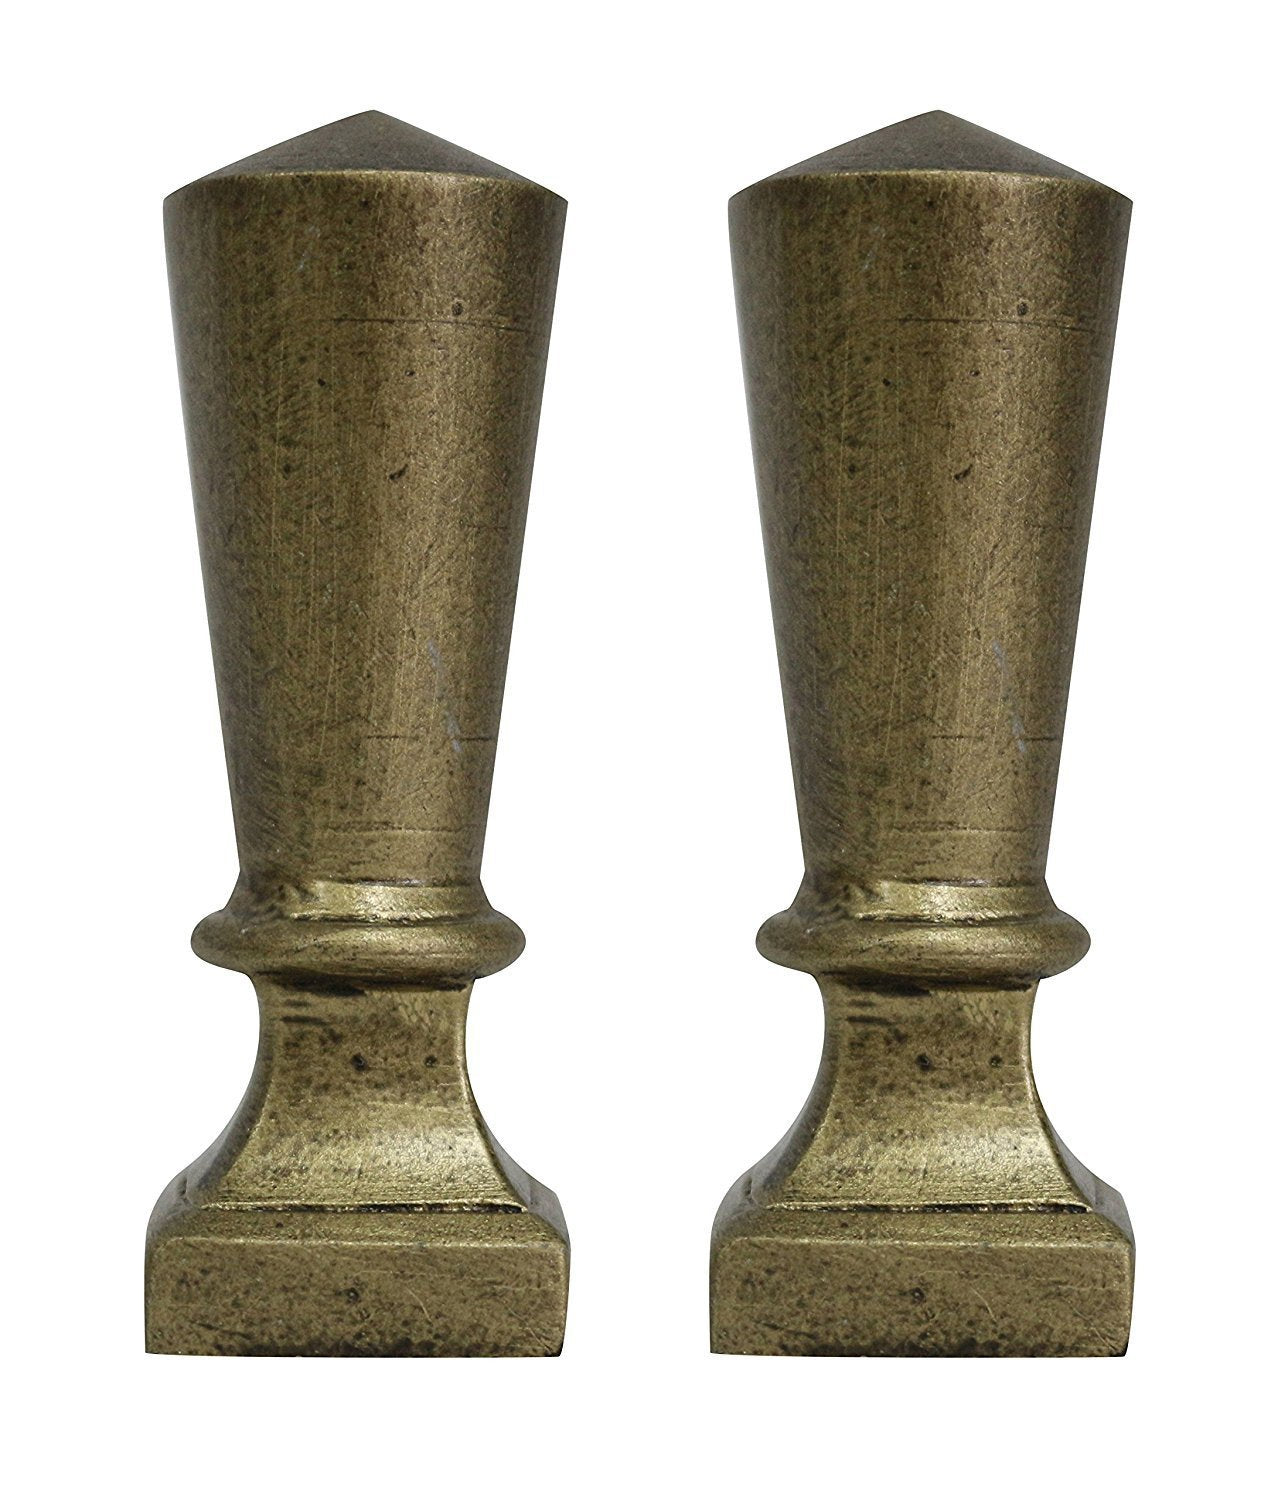 Olivet Lamp Finial, 2 1/2-inch Tall